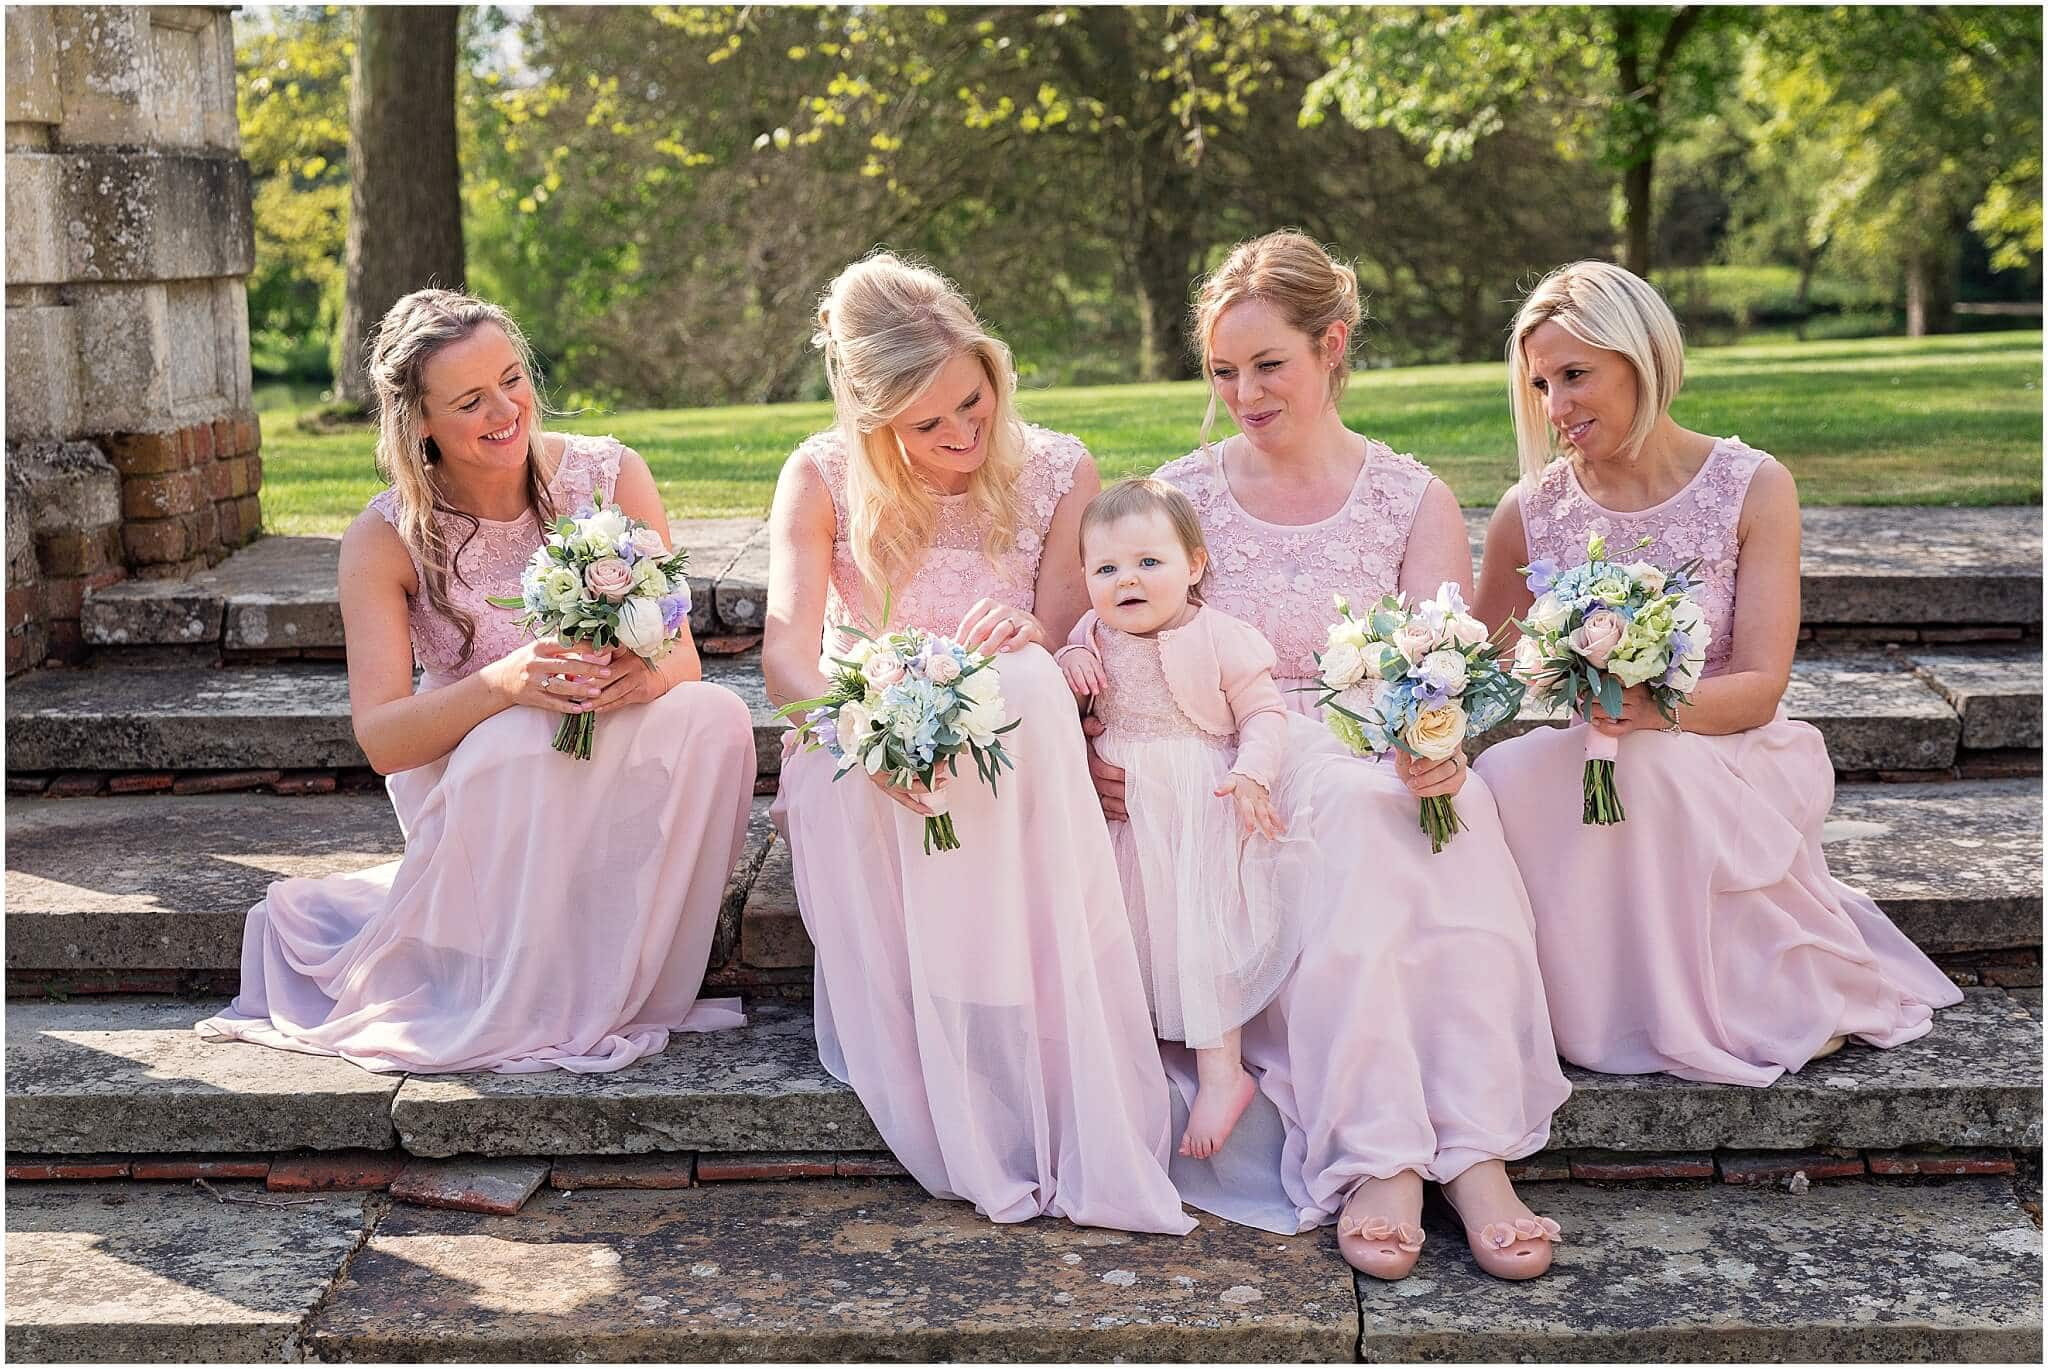 Soft pink bridesmaid dresses and spring flowers at Longstowe Hall